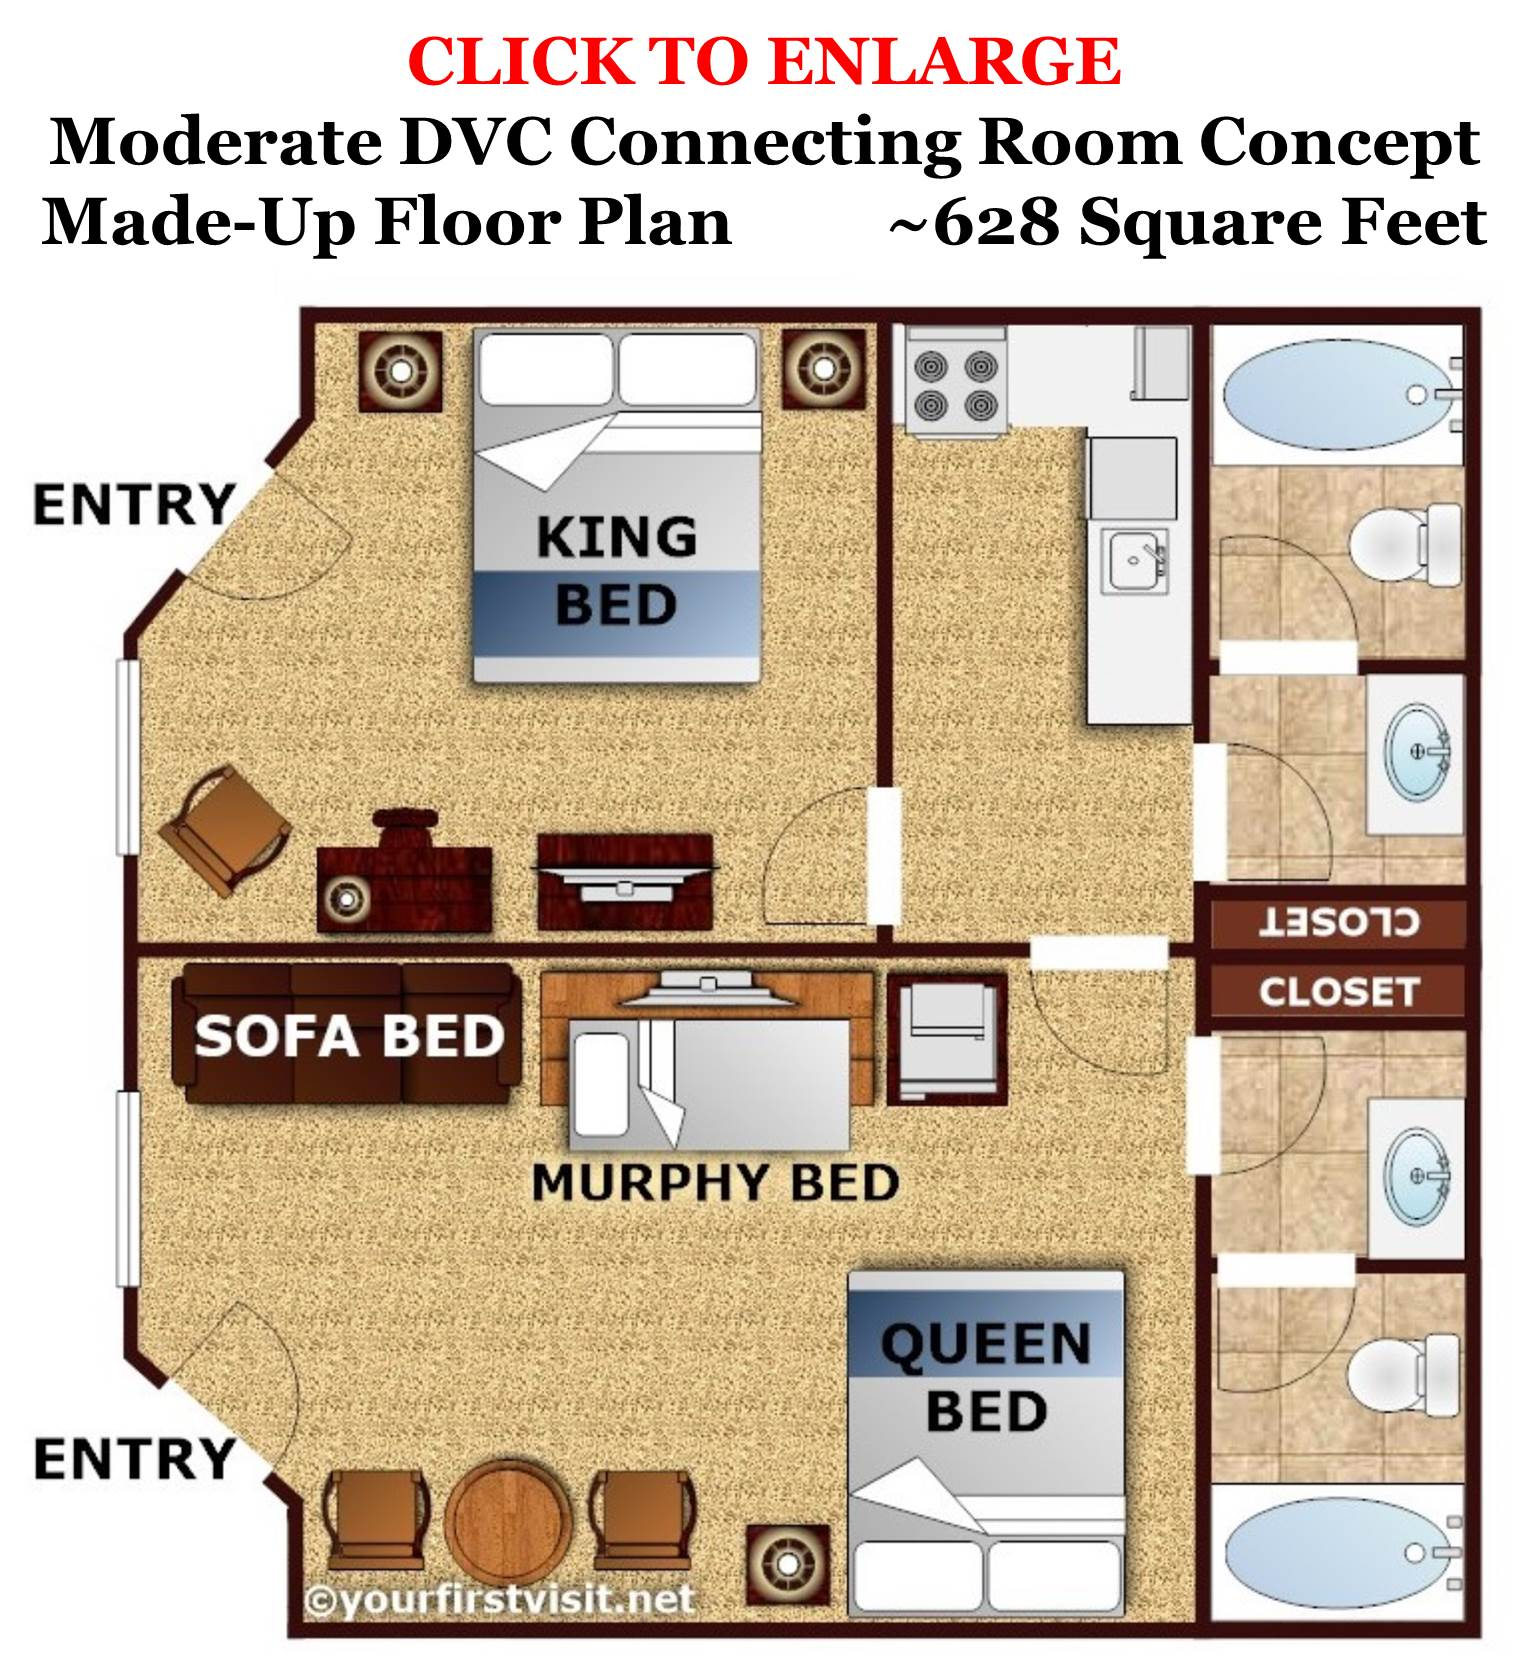 Made Up Concept Floor Plan for DVC at Caribbean Beach from yourfirstvisit.net